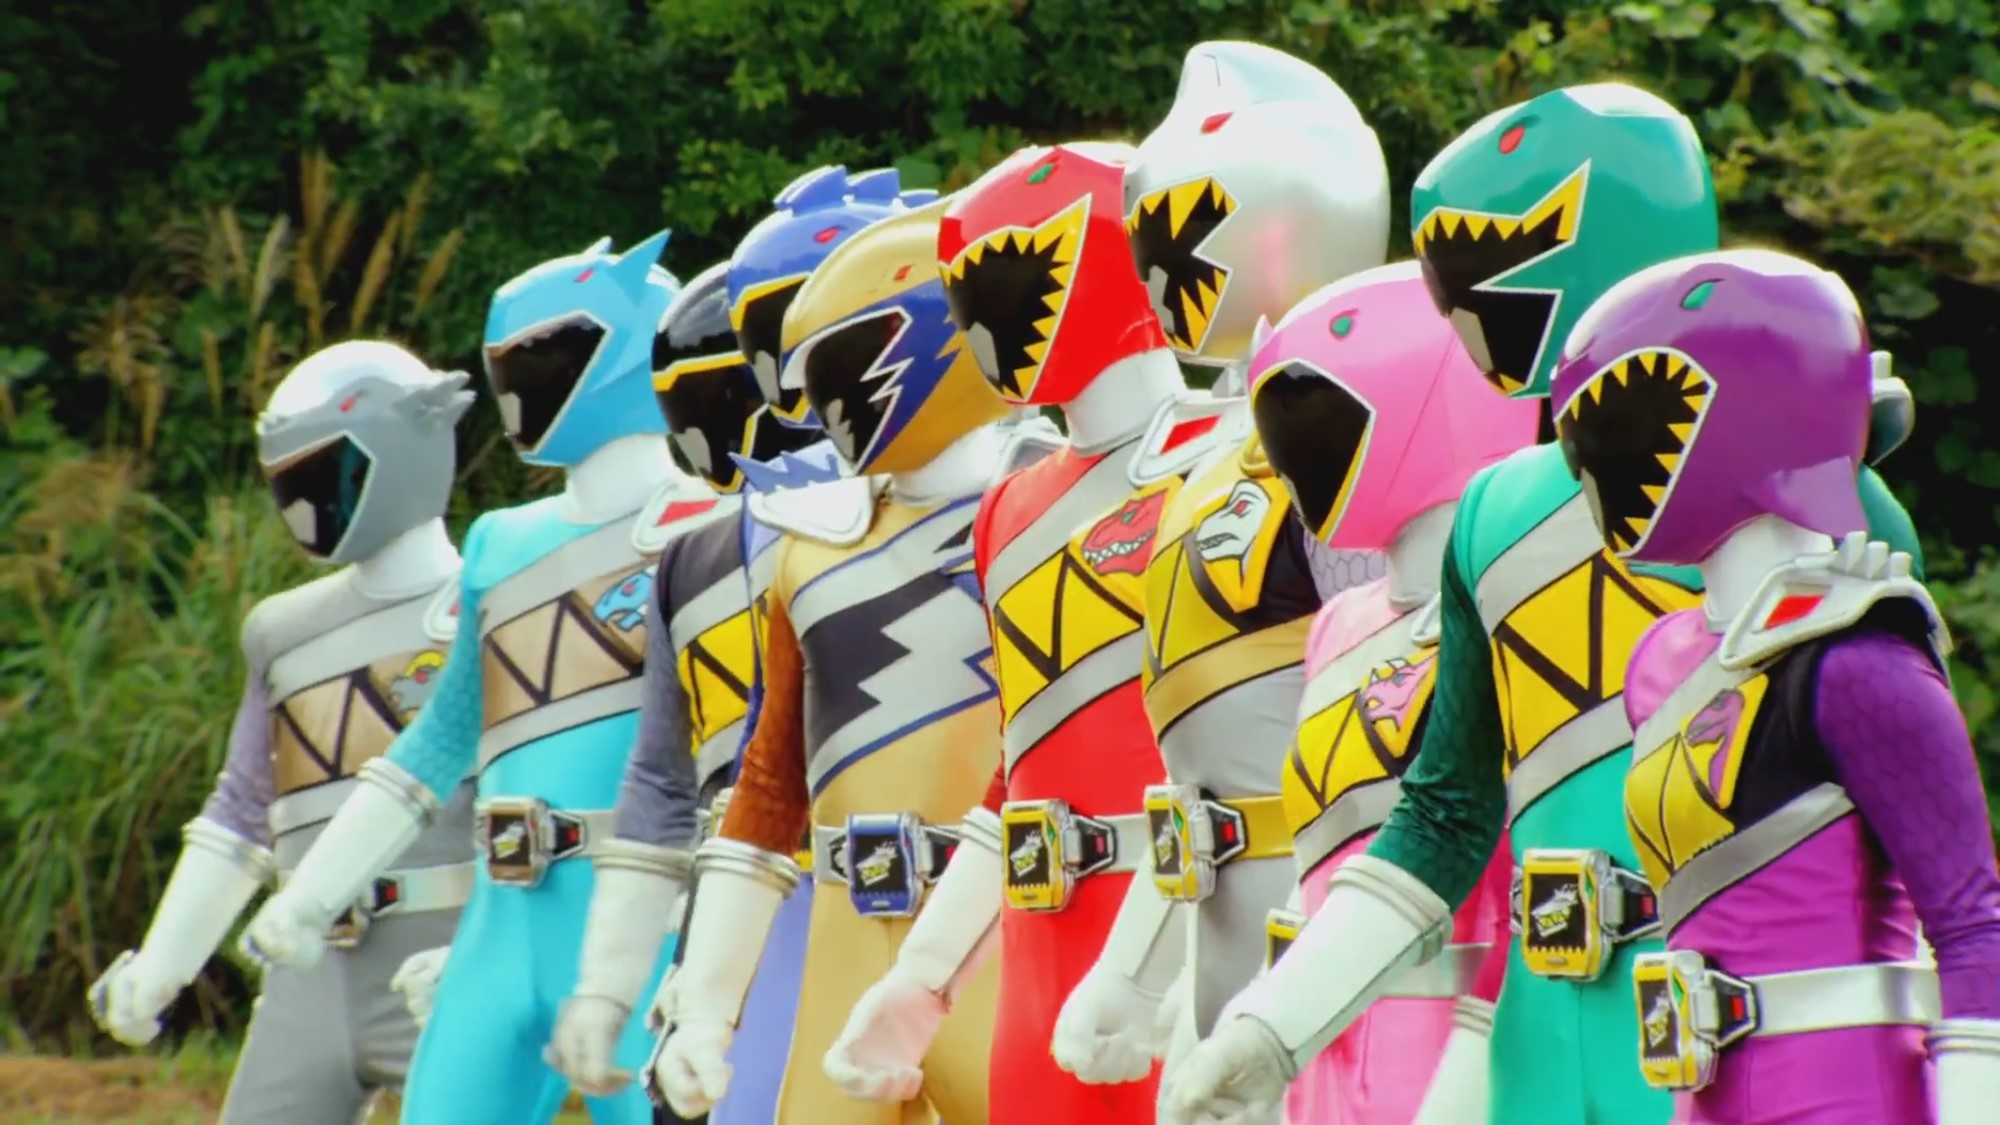 Po po power ranger pages to color - Rangers